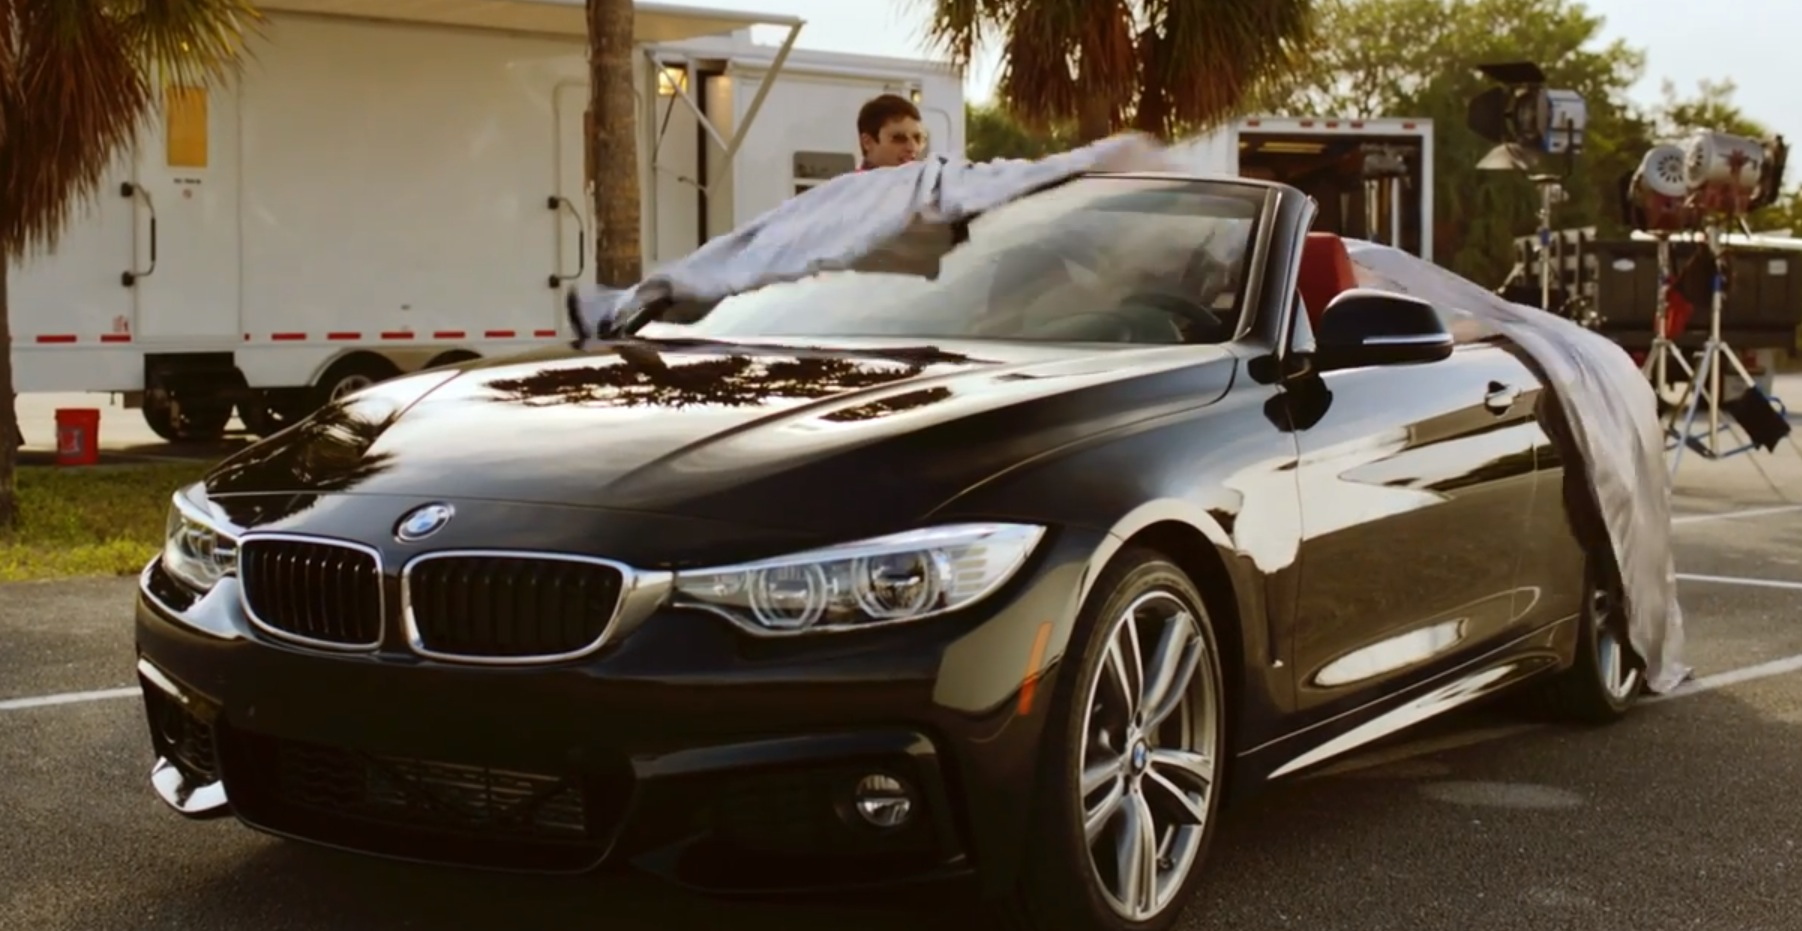 Bmw 4 Series Convertible Stars In James Blunt Postcards Music